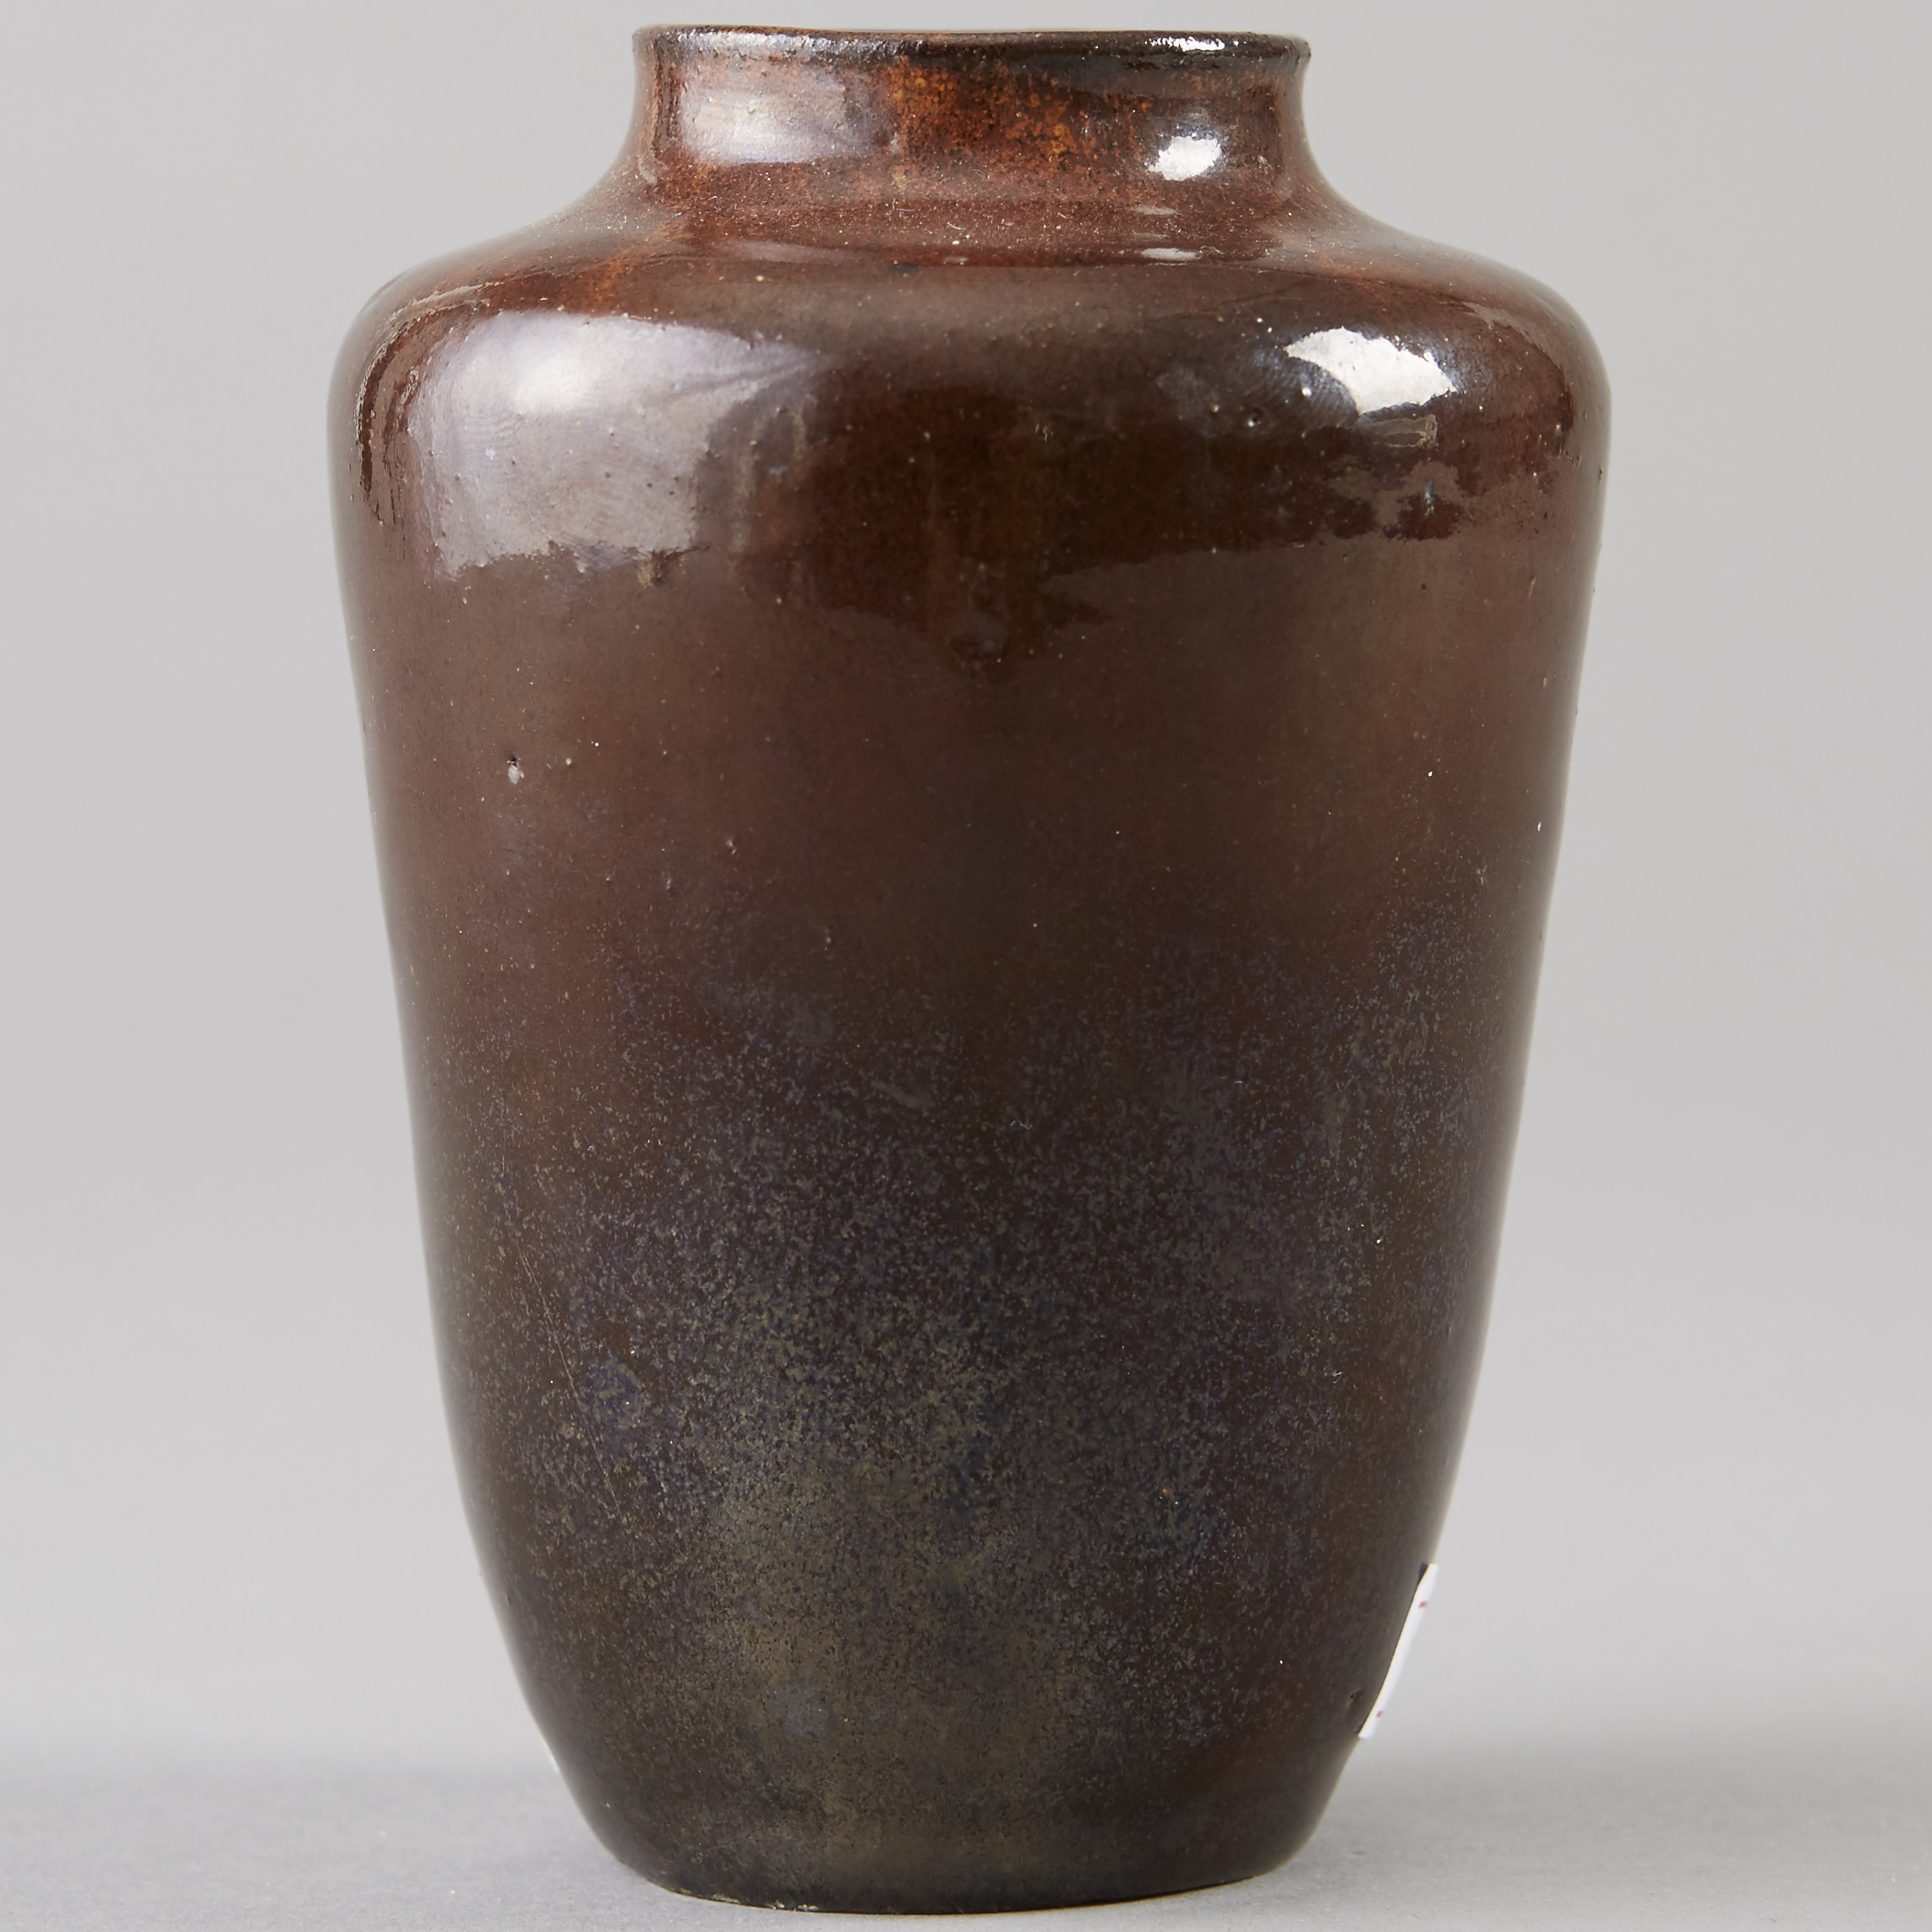 Lot 026: Richard Mutz Brown Ceramic Vase